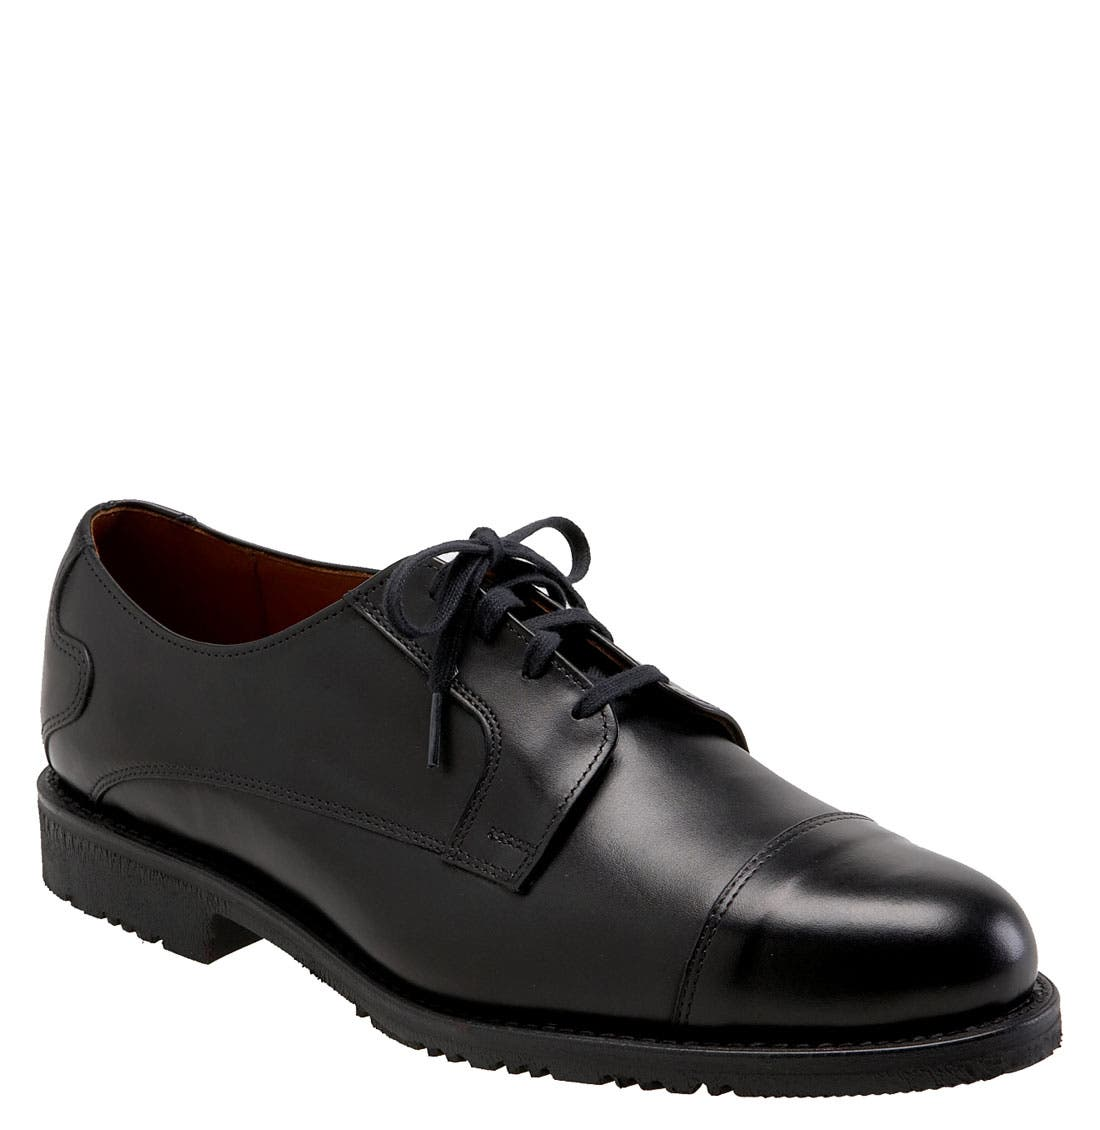 ALLEN EDMONDS,                             'Memphis' Cap Toe Oxford,                             Main thumbnail 1, color,                             001